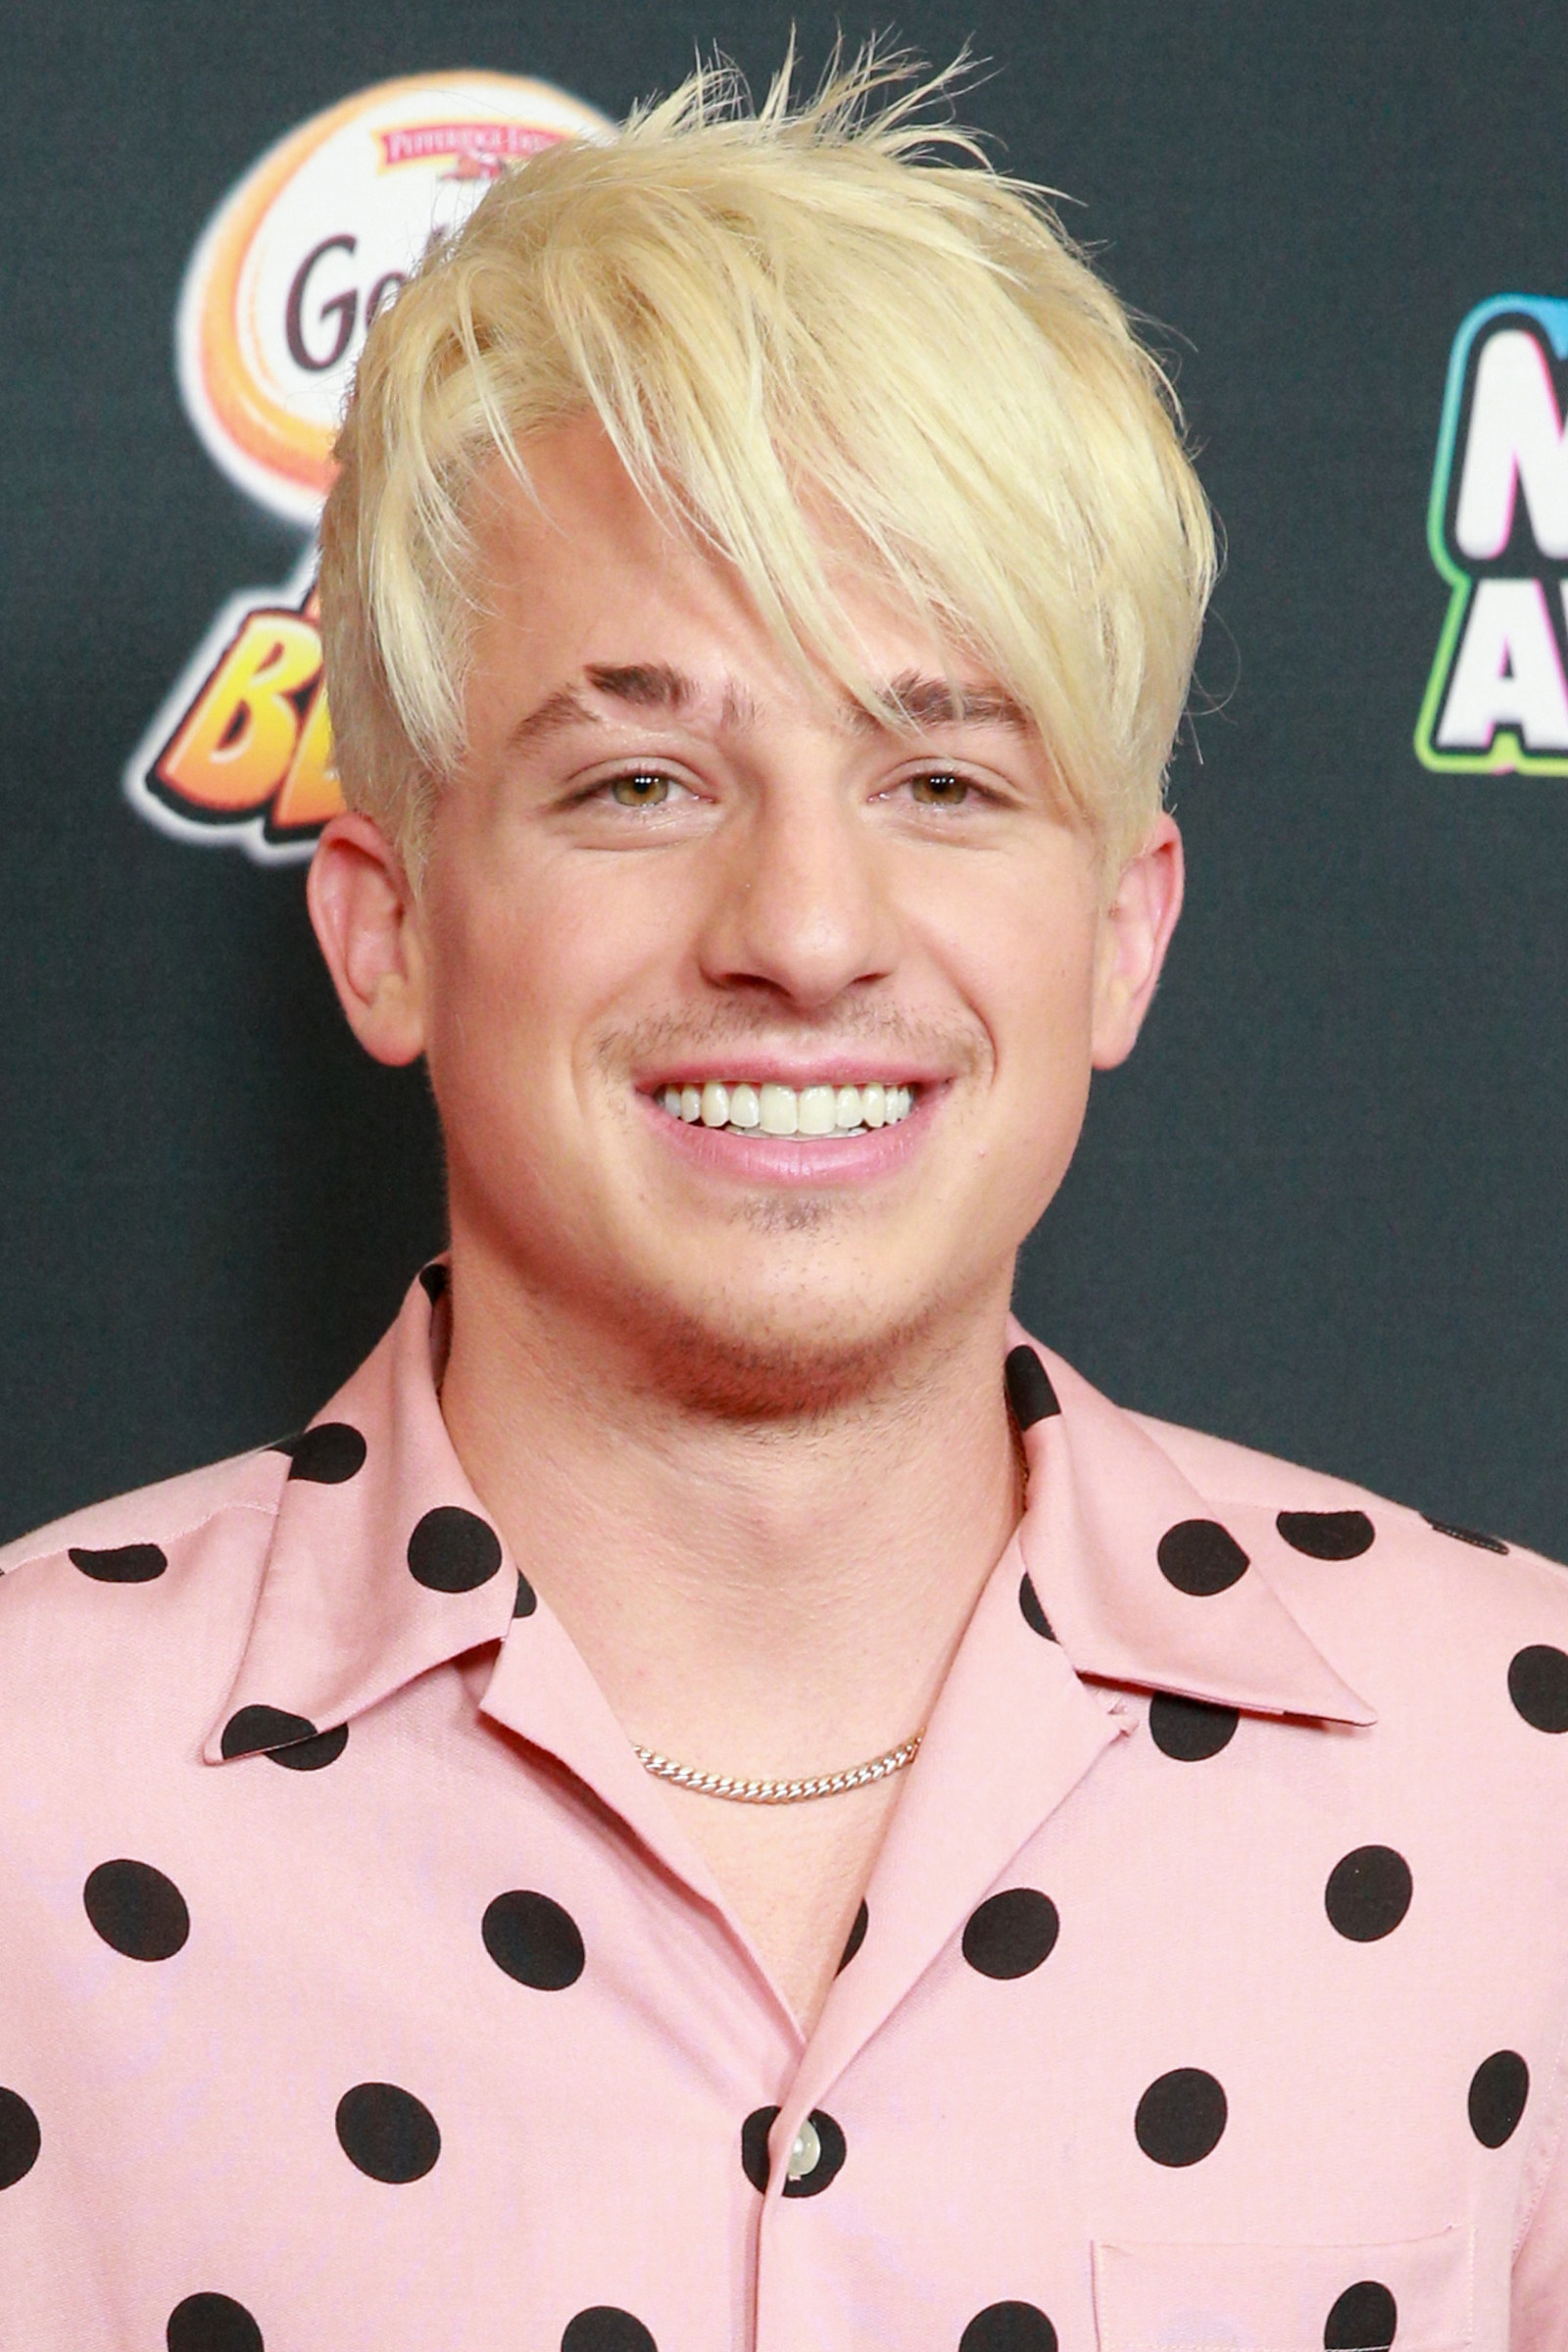 And here is his blonde transformation.